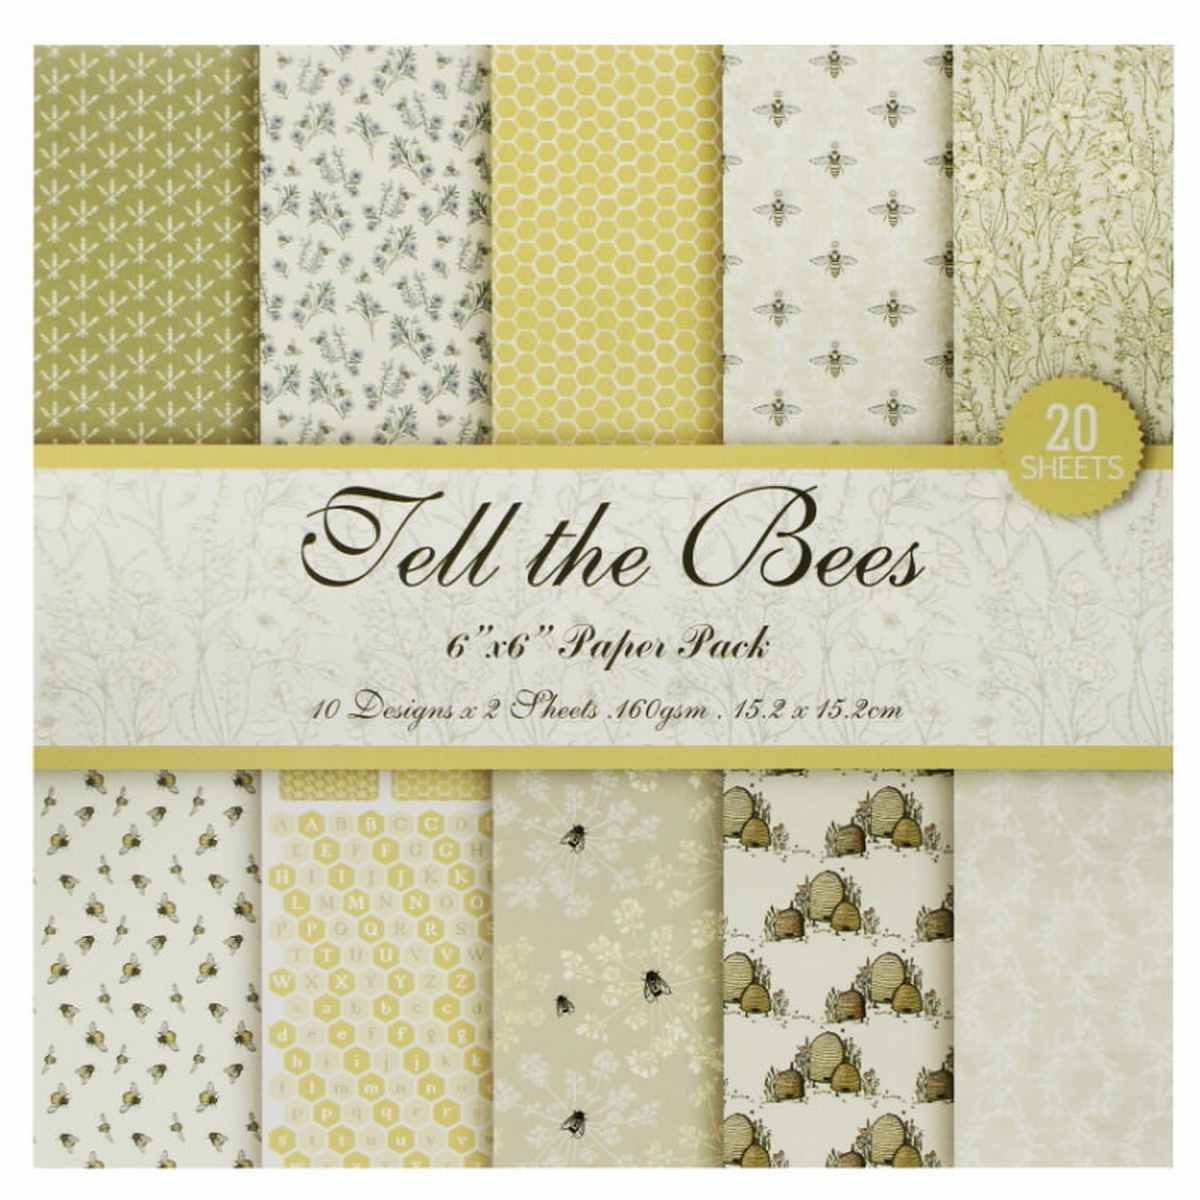 Tell The Bees 6x6 Inch Printed Paper